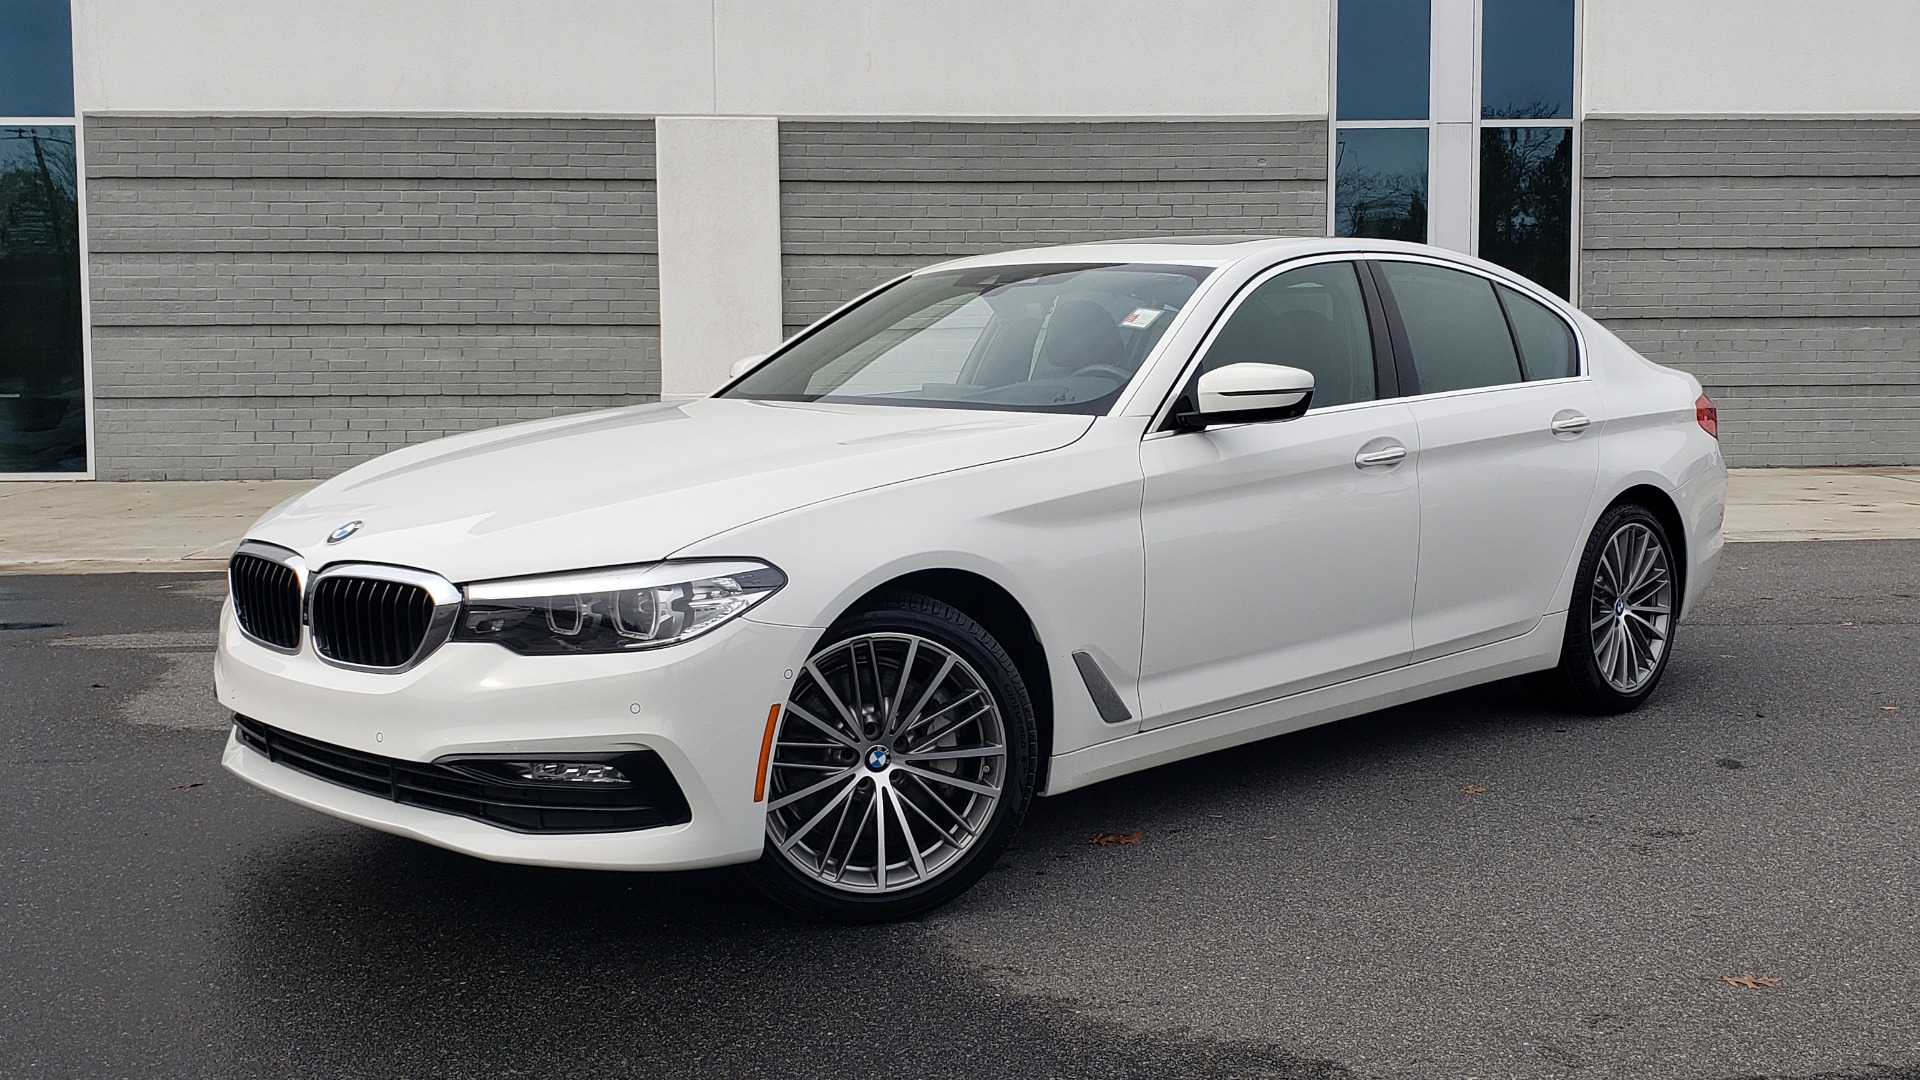 Used 2017 BMW 5 SERIES 530I PREMIUM / DRVR ASST PLUS / NAV / HUD / SUNROOF / REARVIEW for sale Sold at Formula Imports in Charlotte NC 28227 1